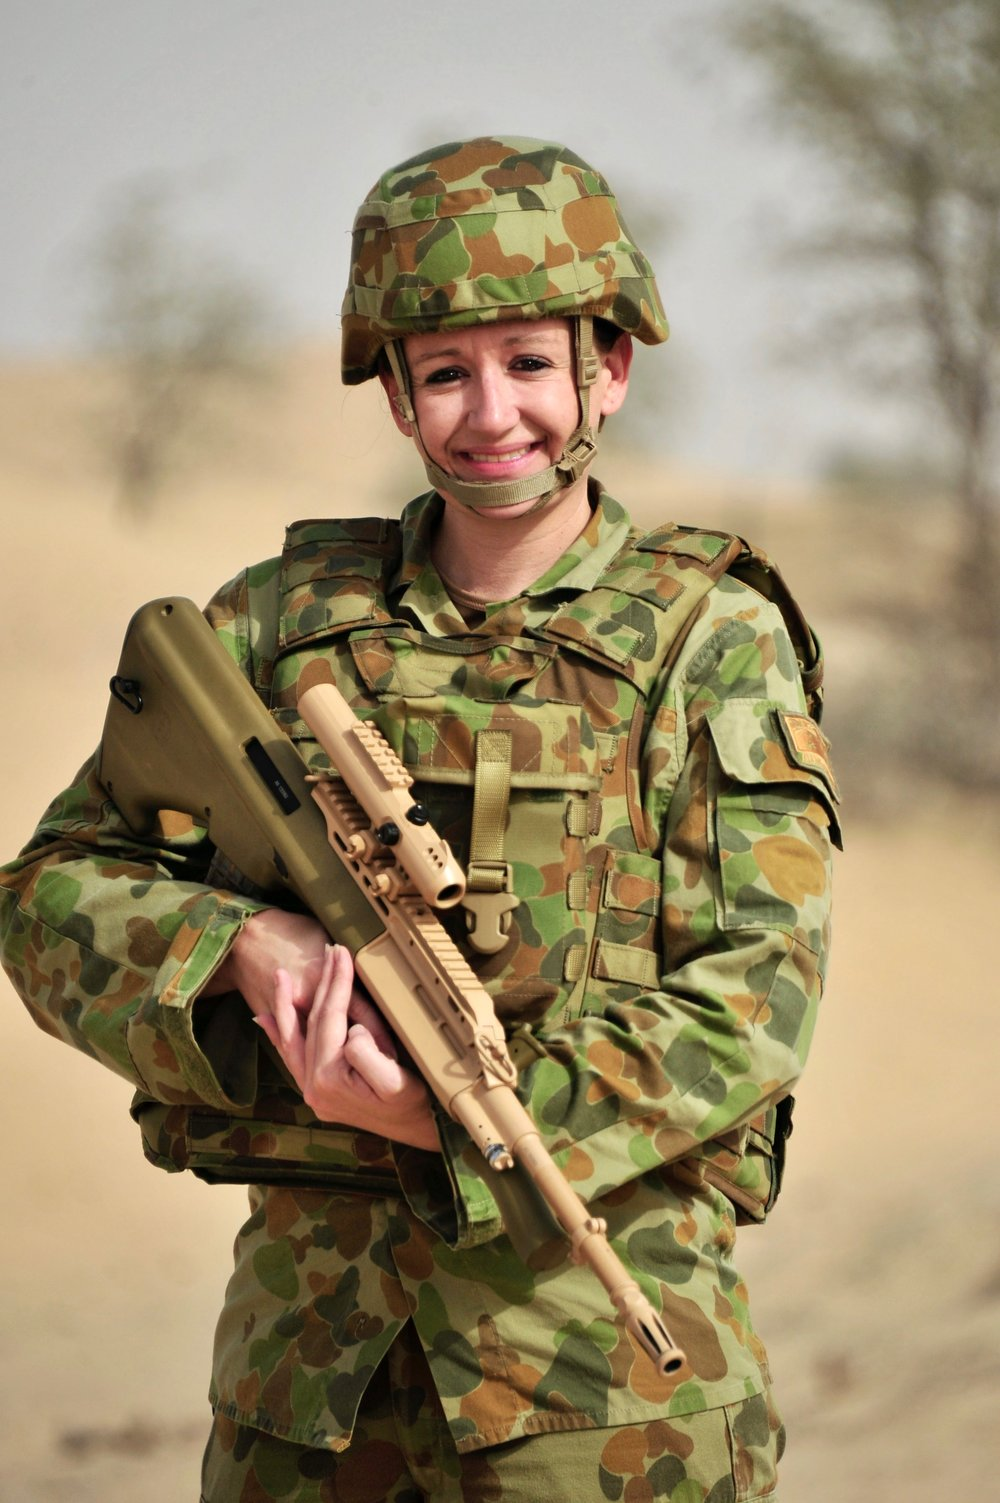 PIC 15    2012-13 – AL MINHAD AIR BASE (AMAB) – On the IED range – Steyr in hand (these photos were taken for a newspaper article back in Oz.jpg